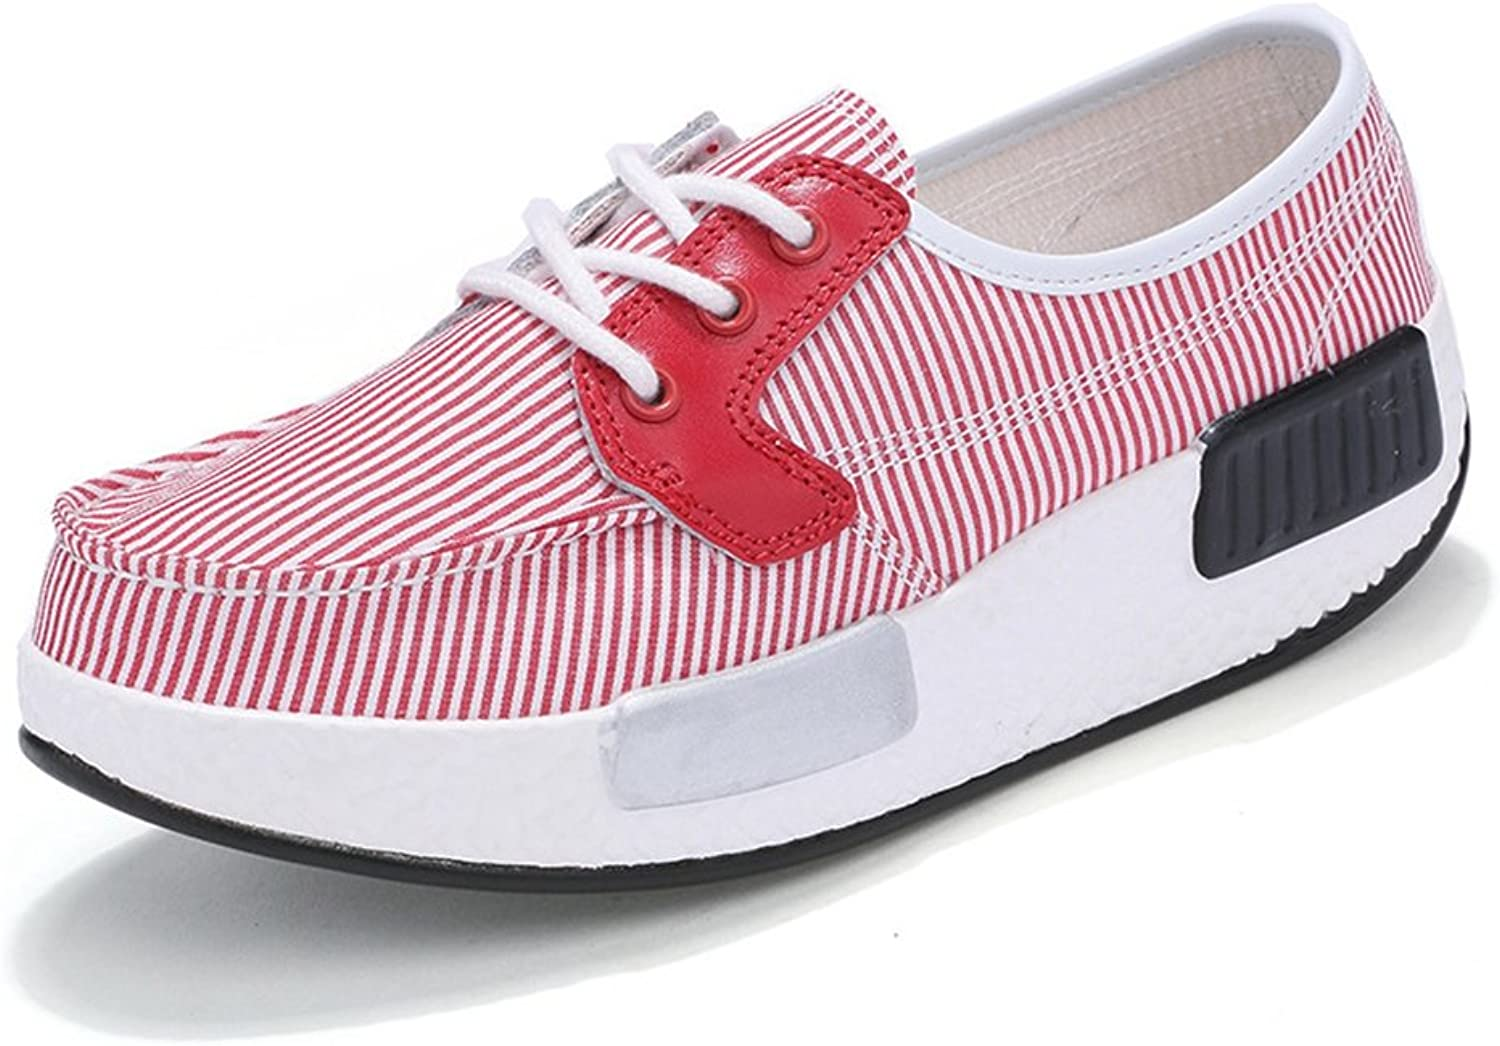 CYBLING Stripe Low Top Sneaker for Women Casual Platform Increased Height Canvas shoes